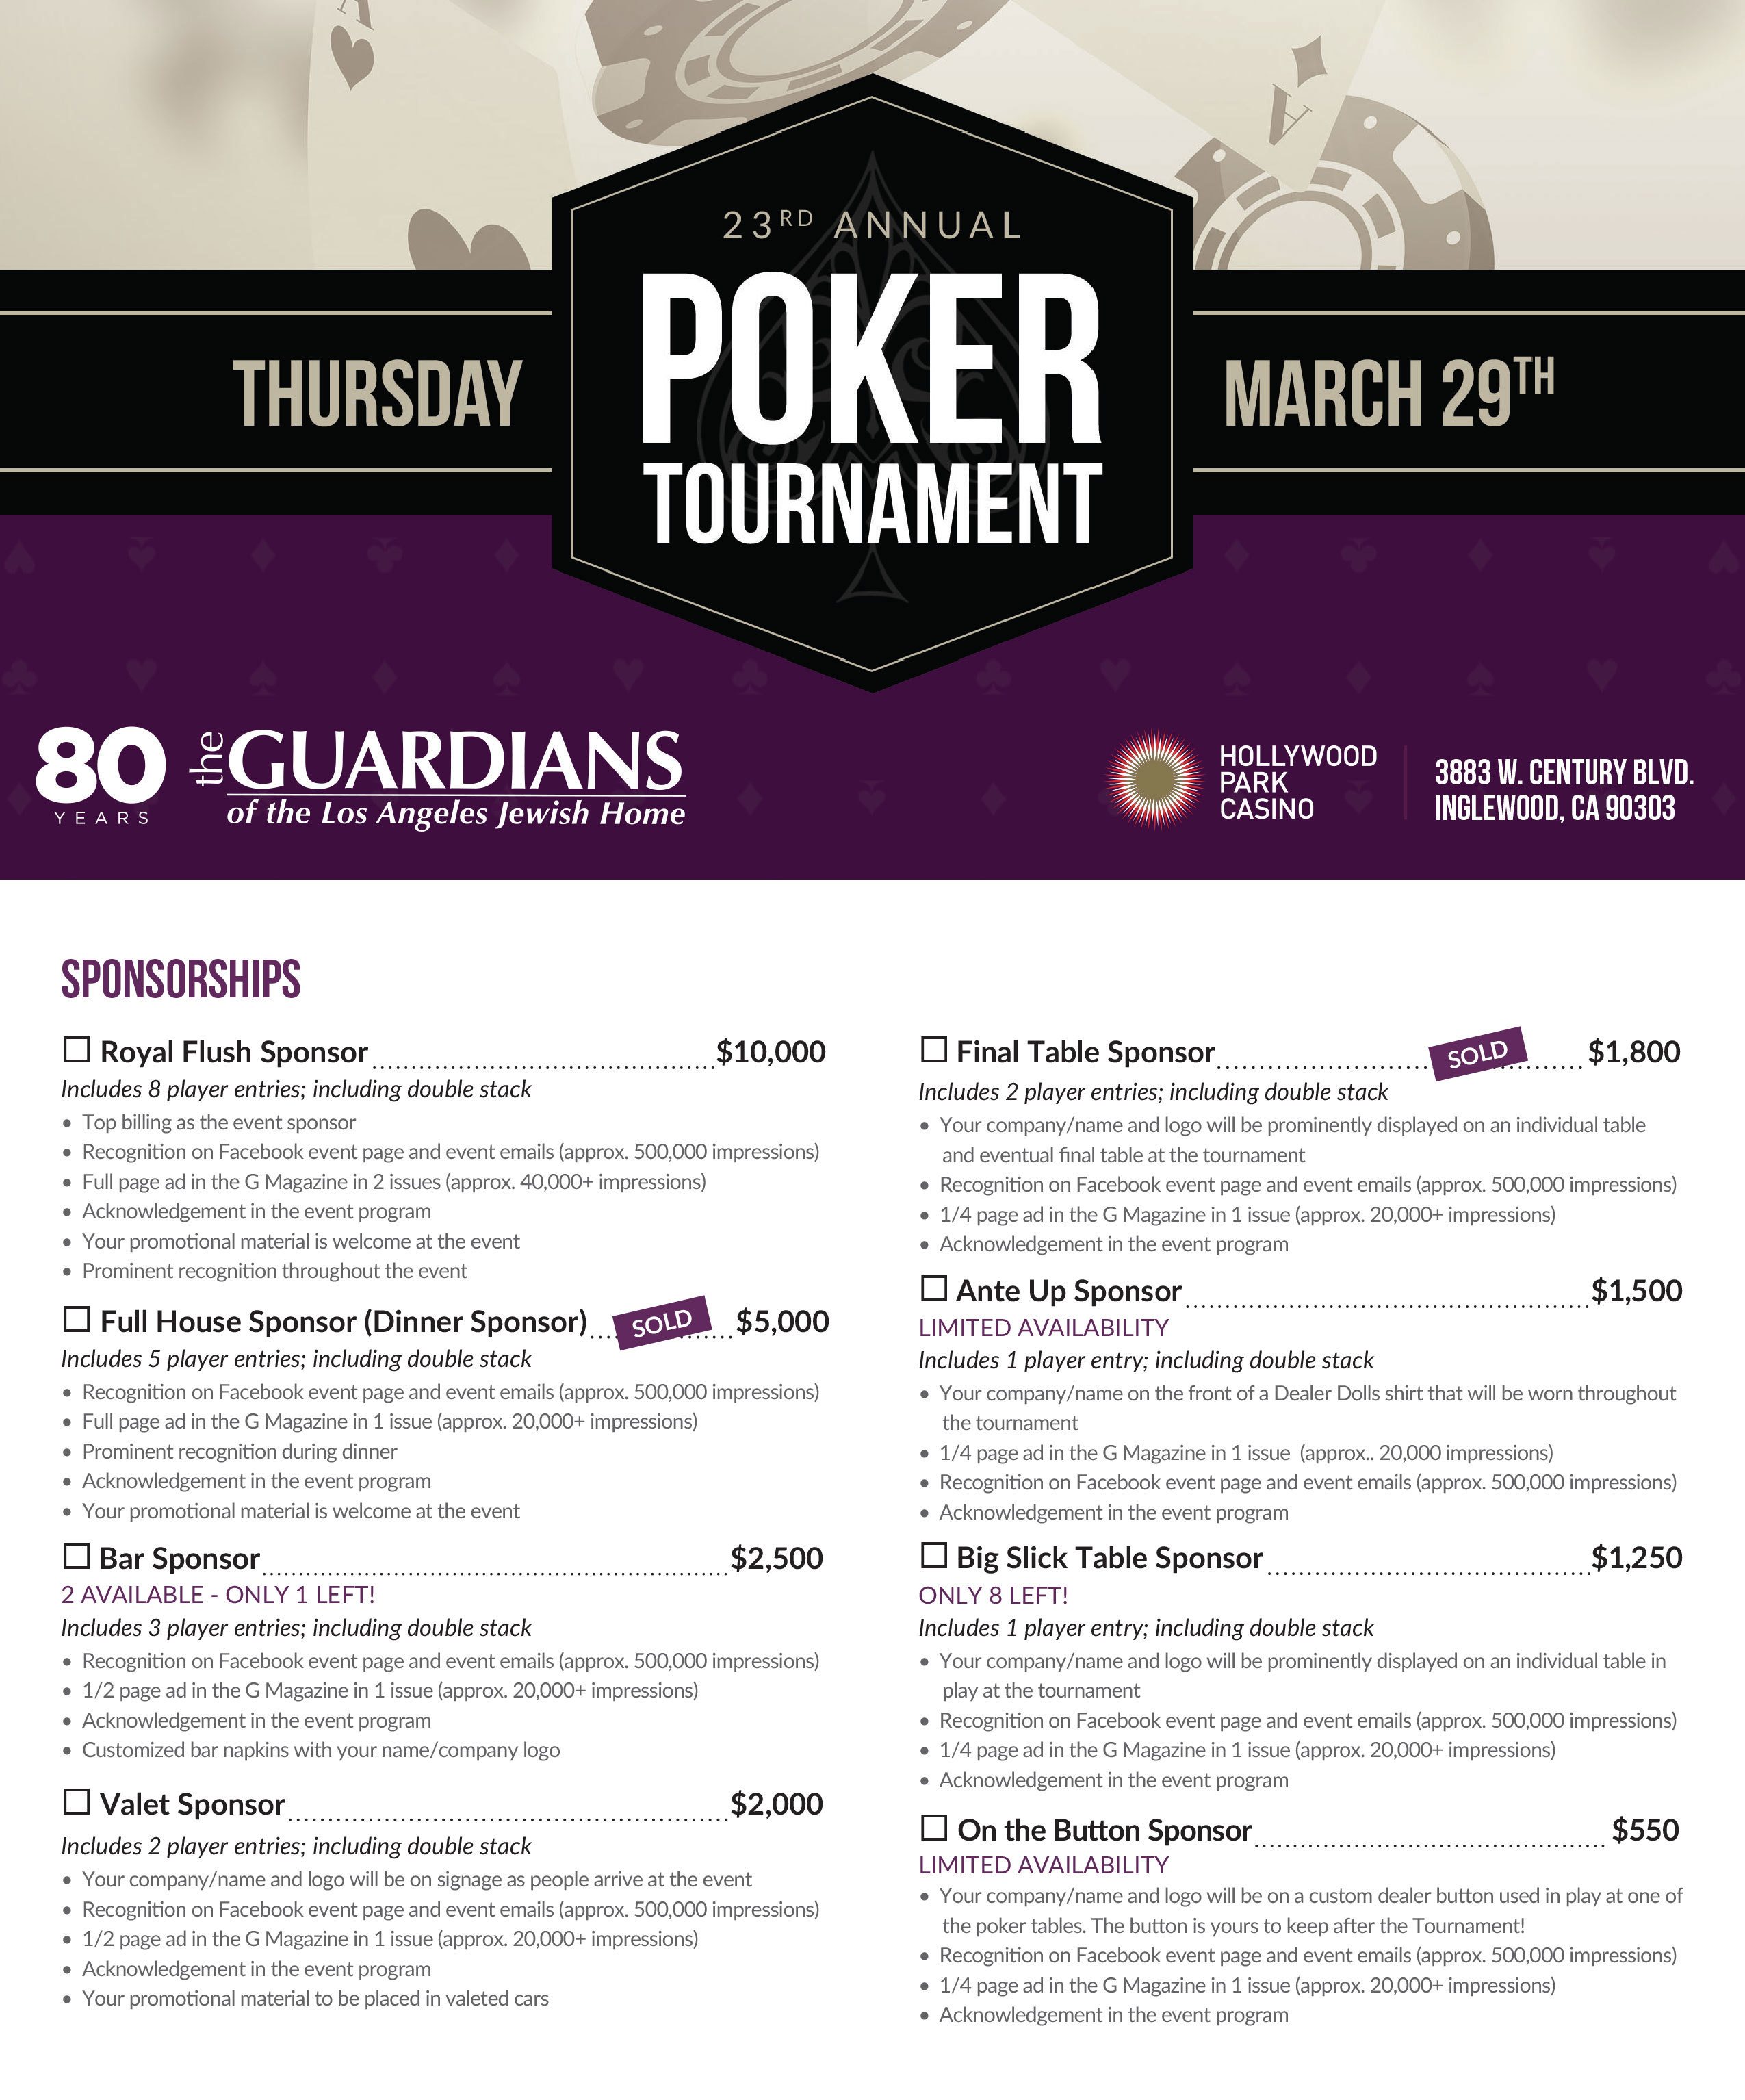 Annual Poker Tournament